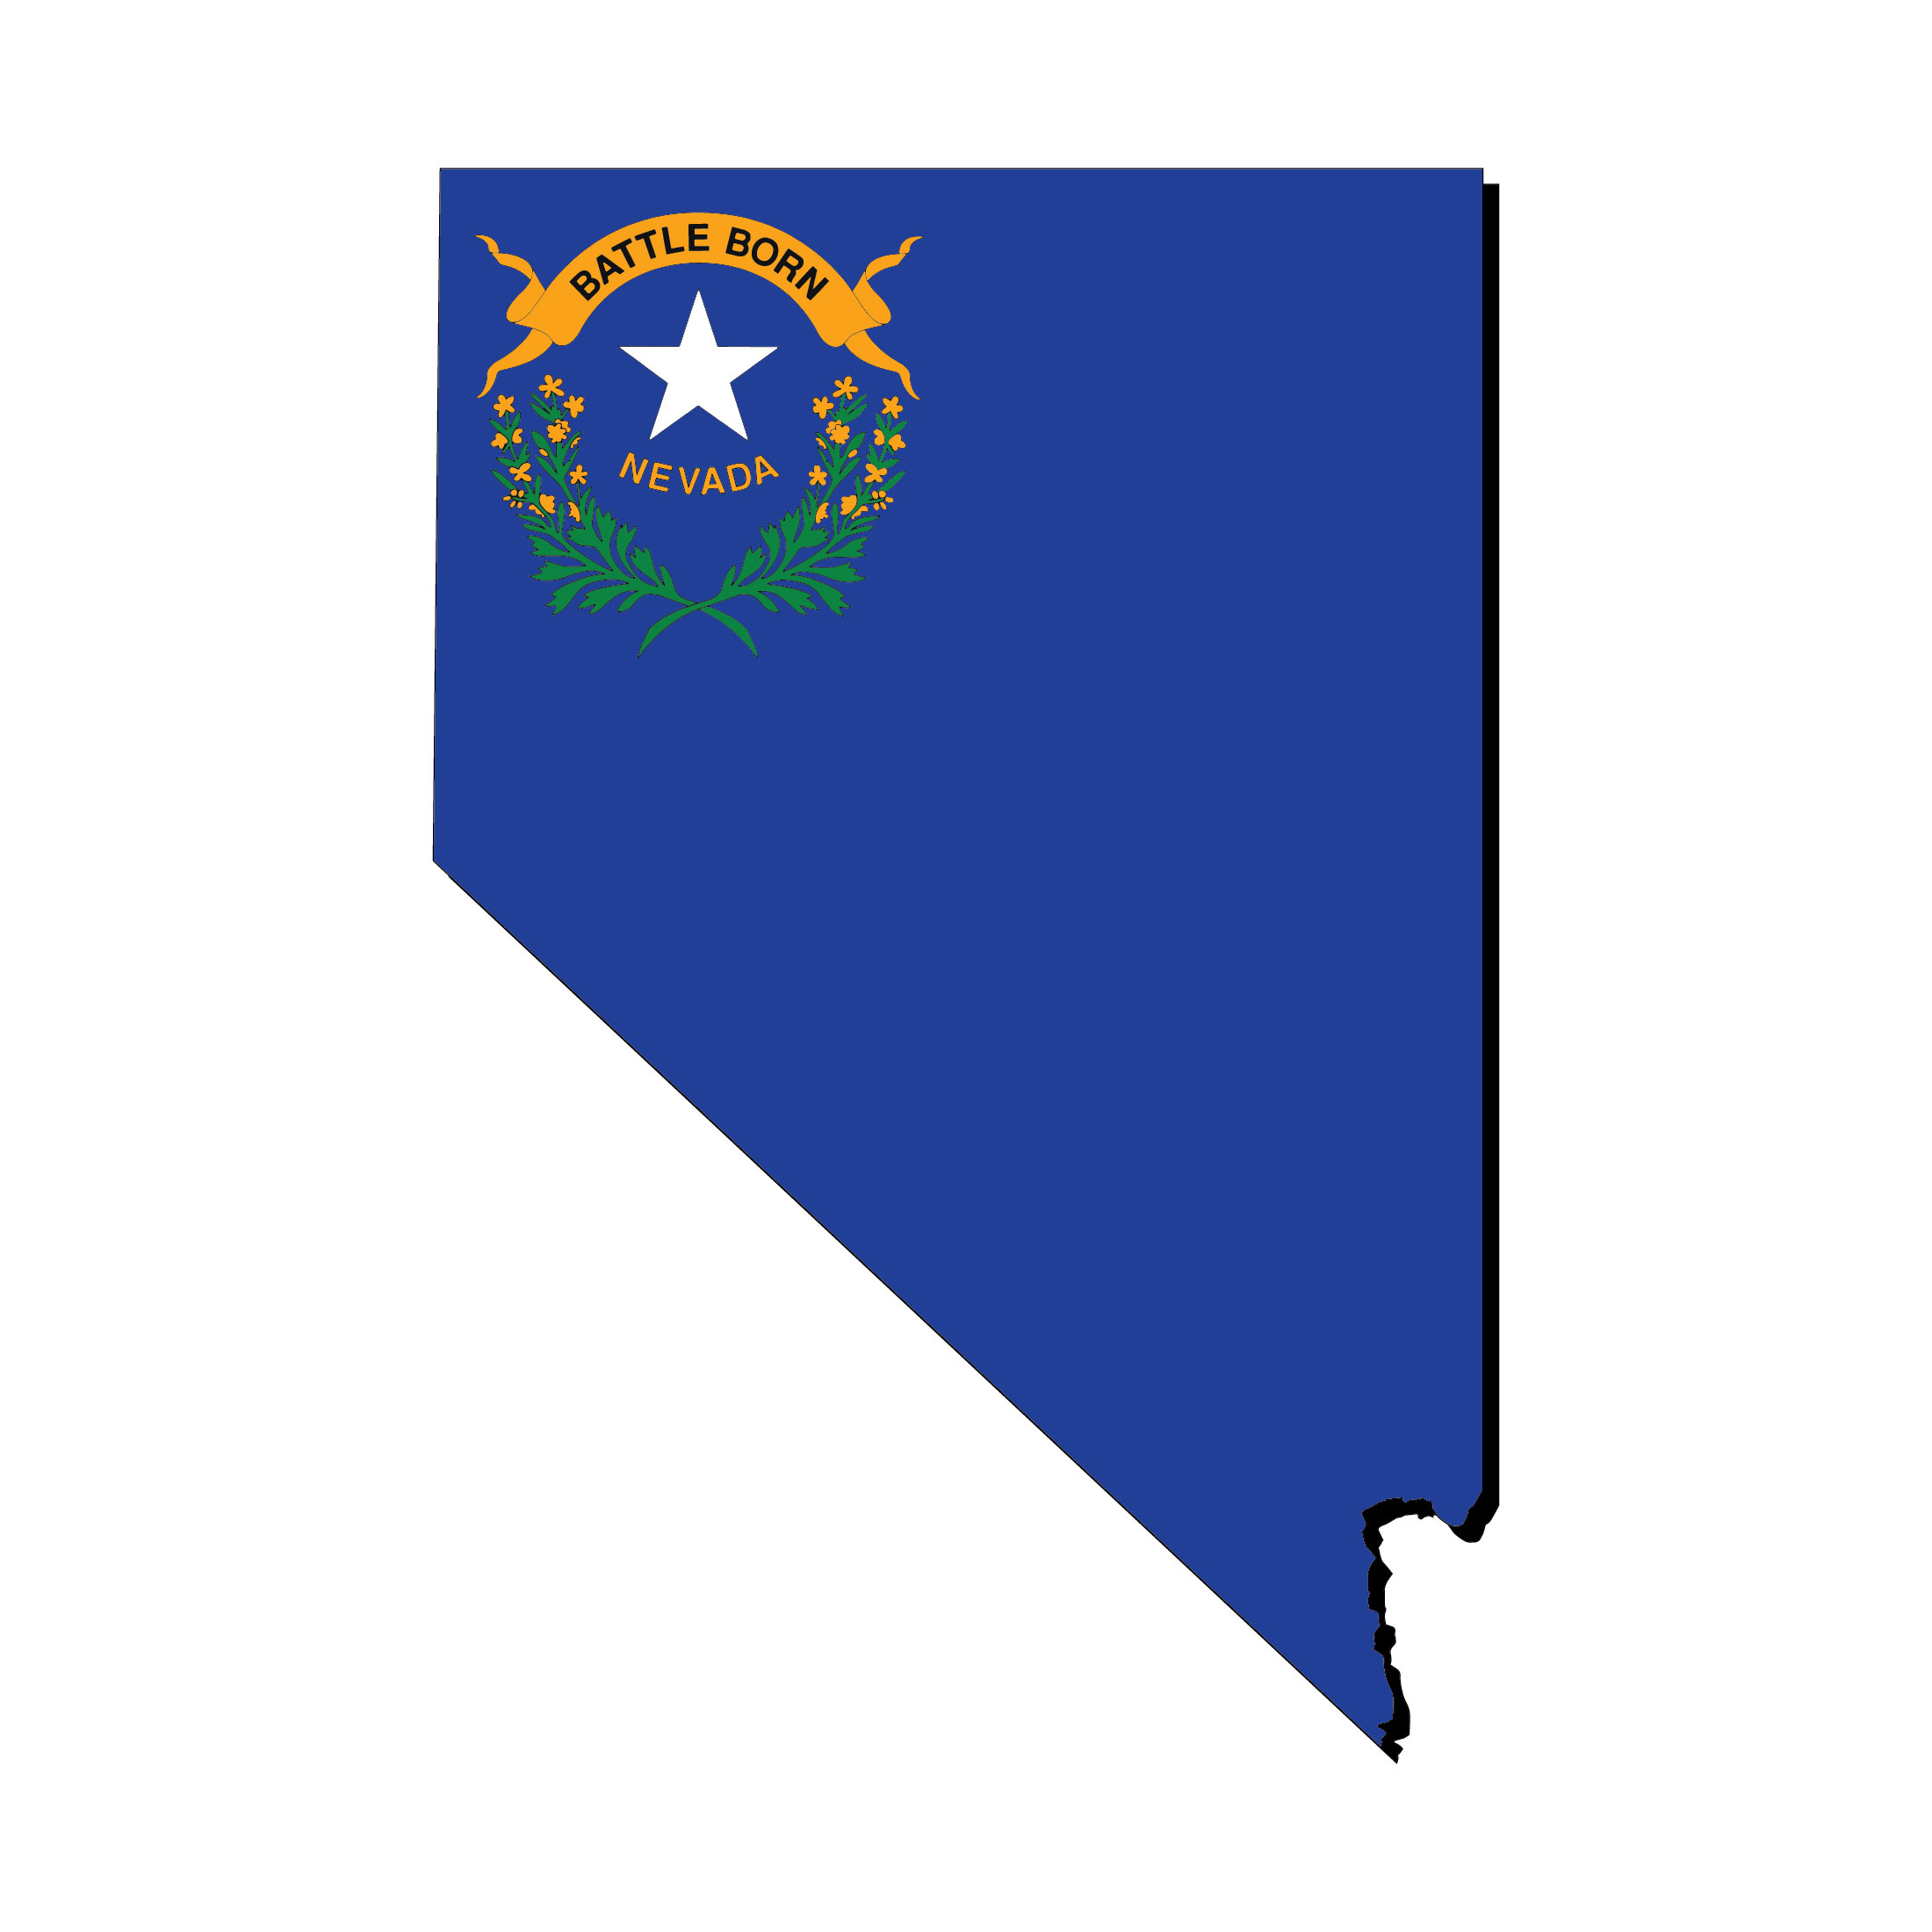 Nevada Architect Continuing Education Requirements